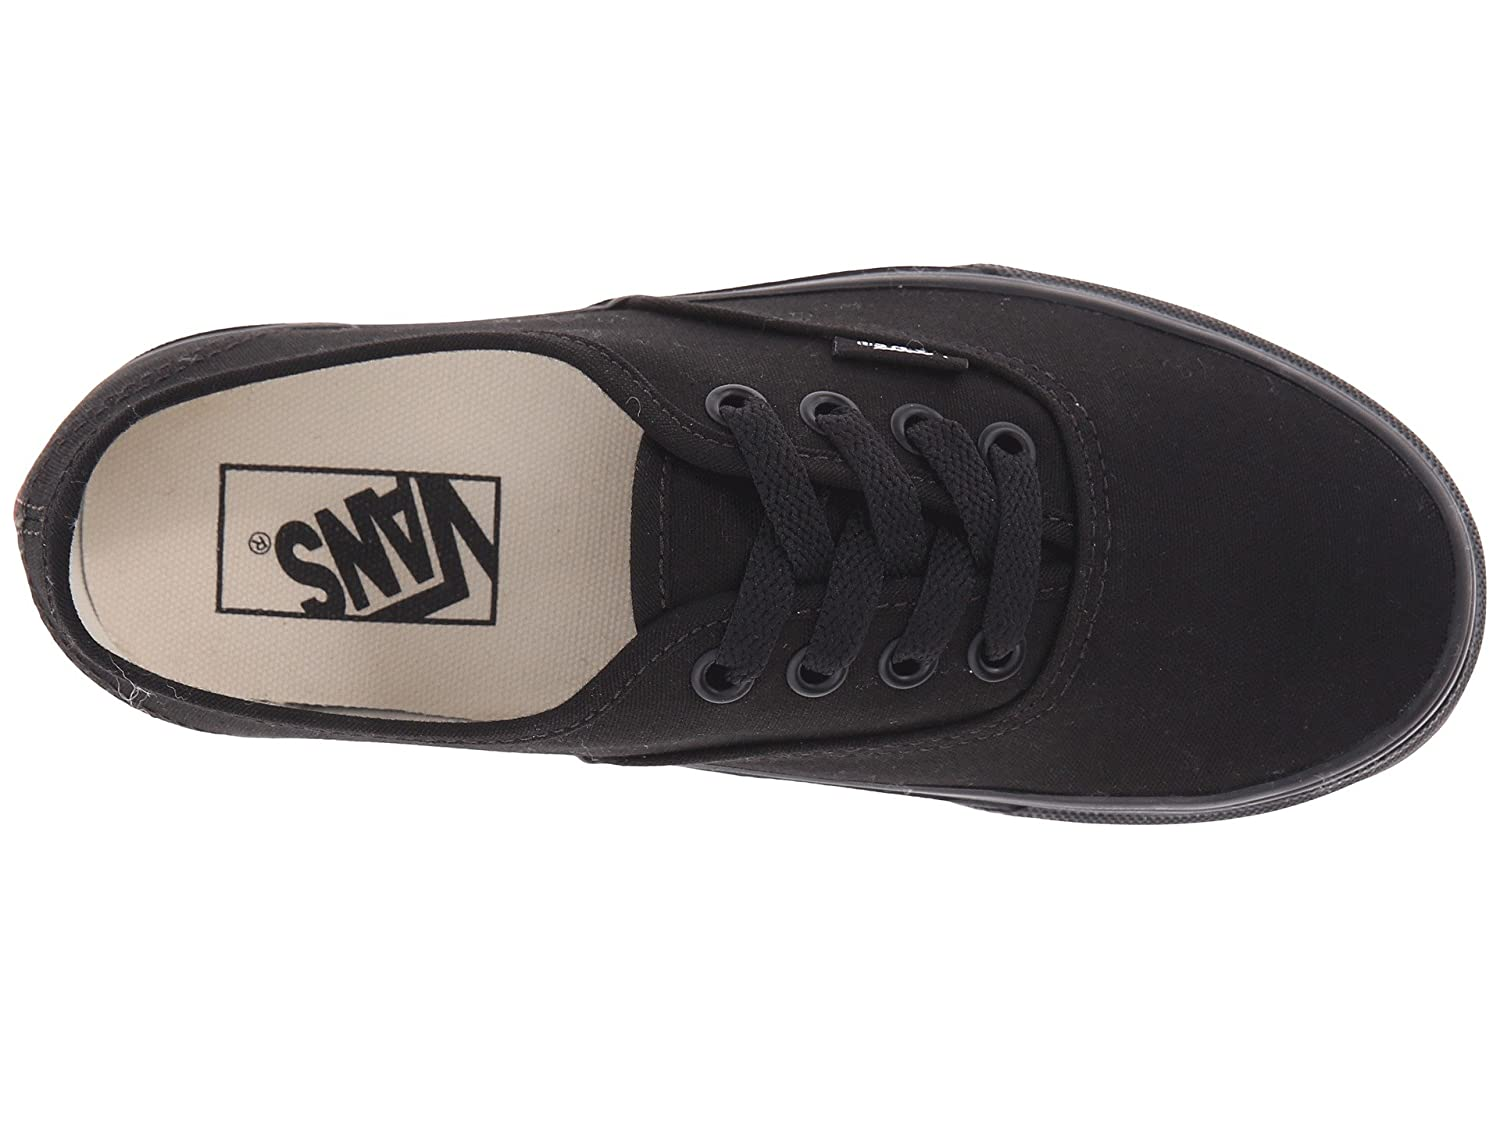 Vans Unisex Authentic US|Black Canvas Shoes B0771SNGCQ 9 D(M) US|Black Authentic and Black 14cc43